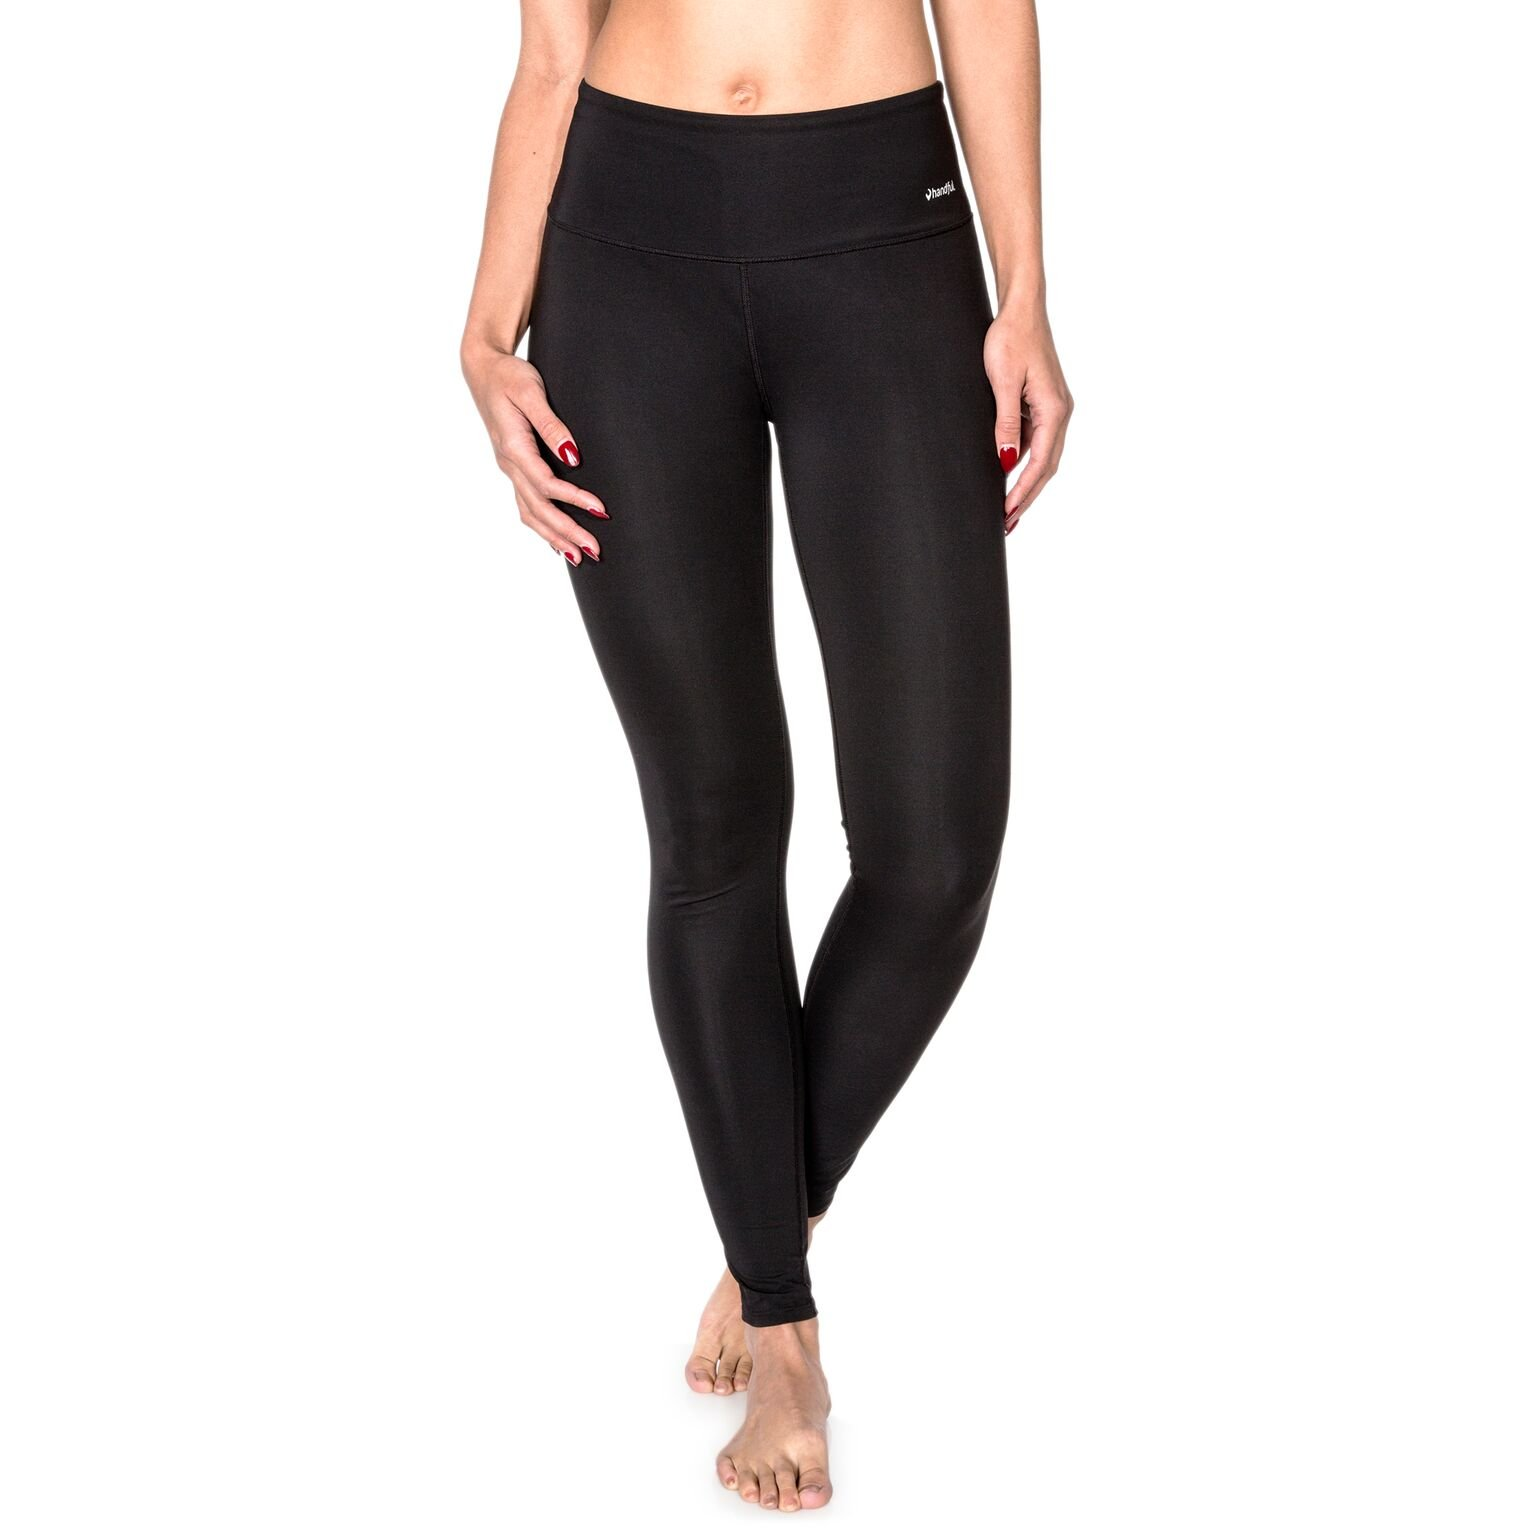 Handful Women's Squeeze Play High Waisted Workout Leggings w/Pocket, Yoga and Fitness Activewear